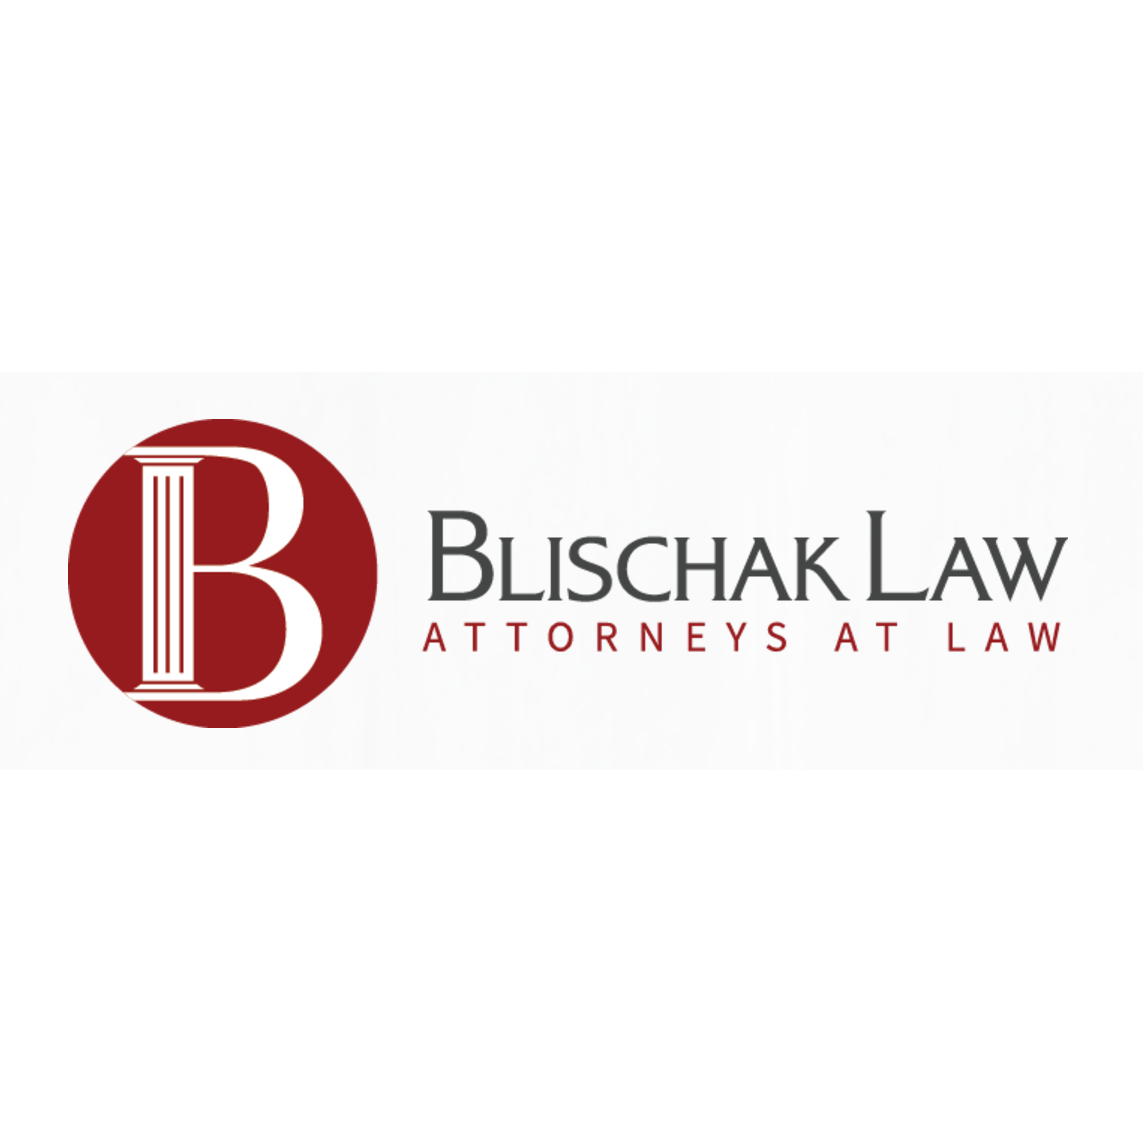 Blischak Law